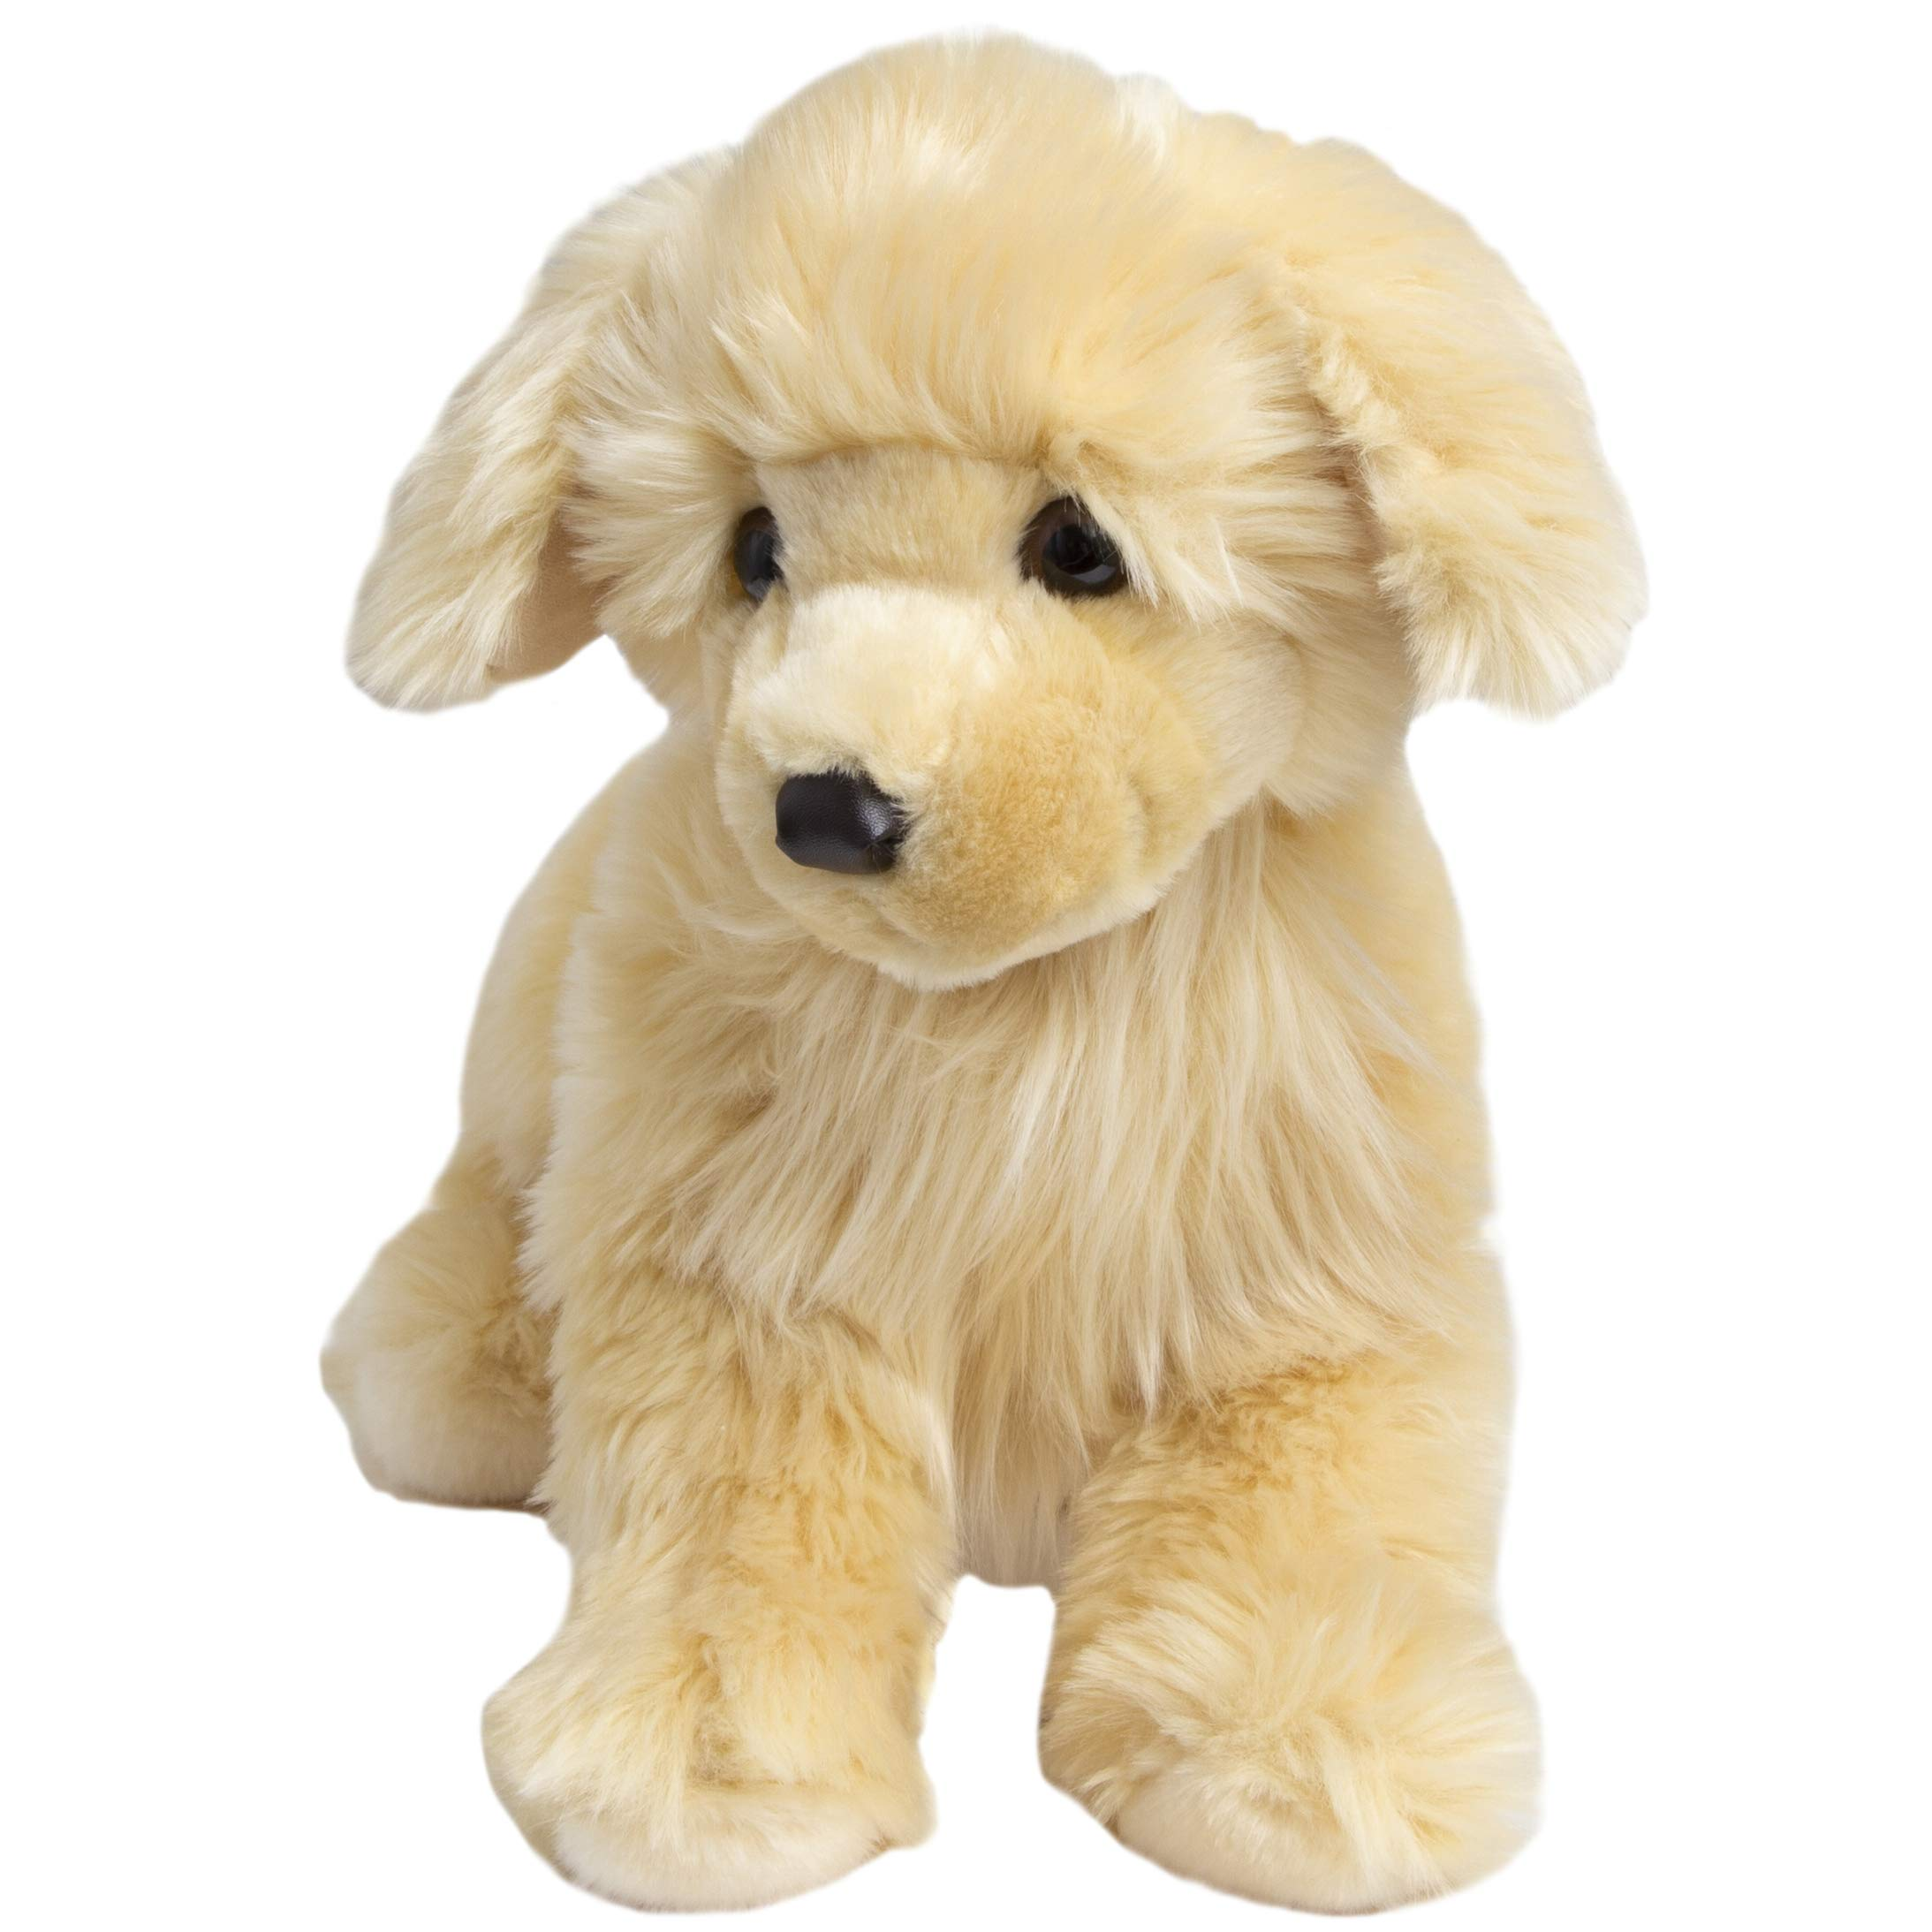 FAO Schwarz 20'' Golden Retriever Puppy Dog Toy Plush, Ultra Soft and Snuggly Stuffed Animal Doll for Creative and Imagination Play, for Boys, Girls, Children Ages 3 and Up, Playroom and Nursery by FAO Schwarz